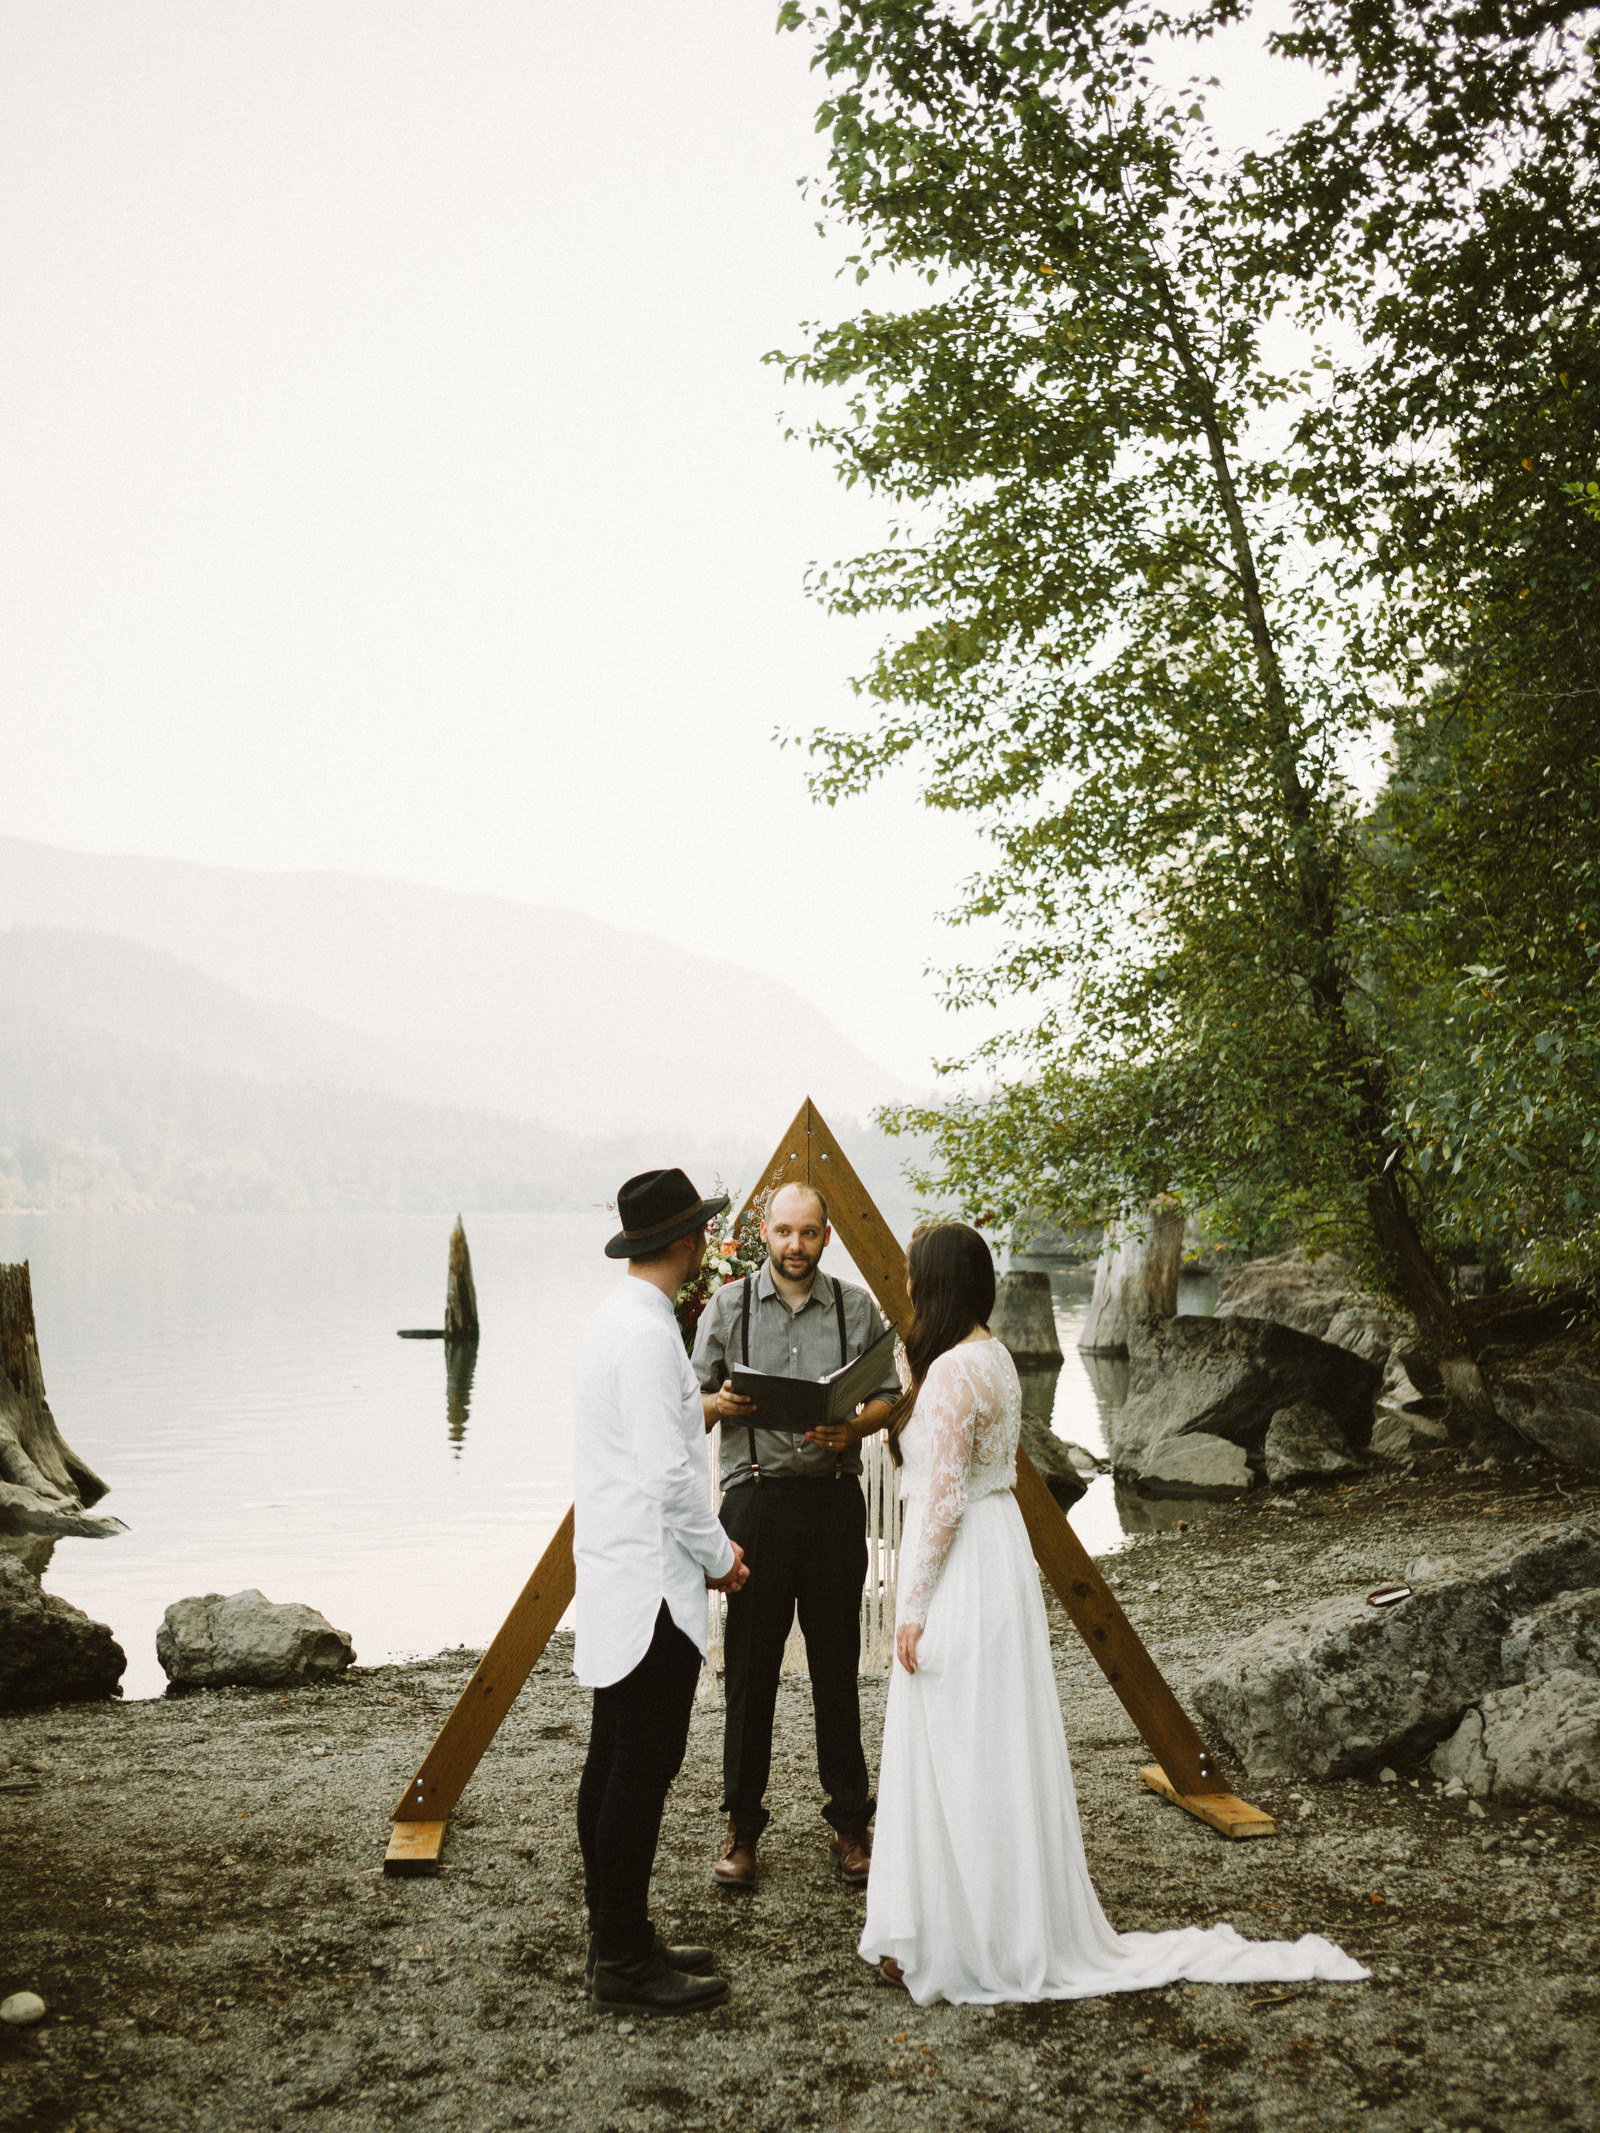 athena-and-camron-seattle-elopement-wedding-benj-haisch-rattlesnake-lake-christian-couple-goals59